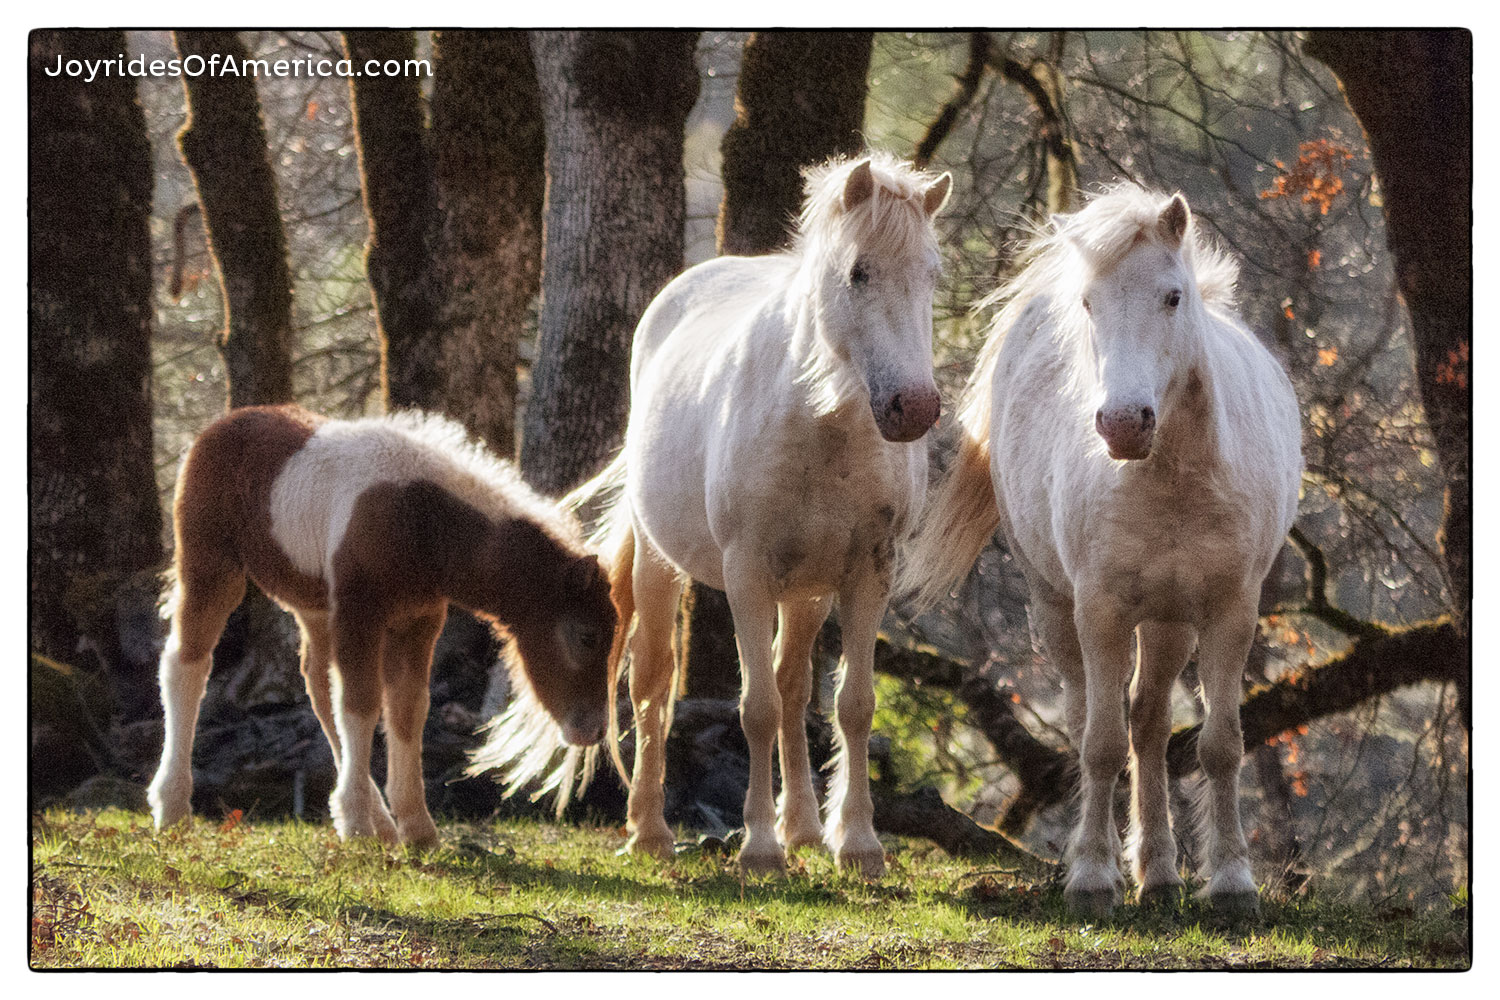 A magical place, with magical beasts.Wild horses!